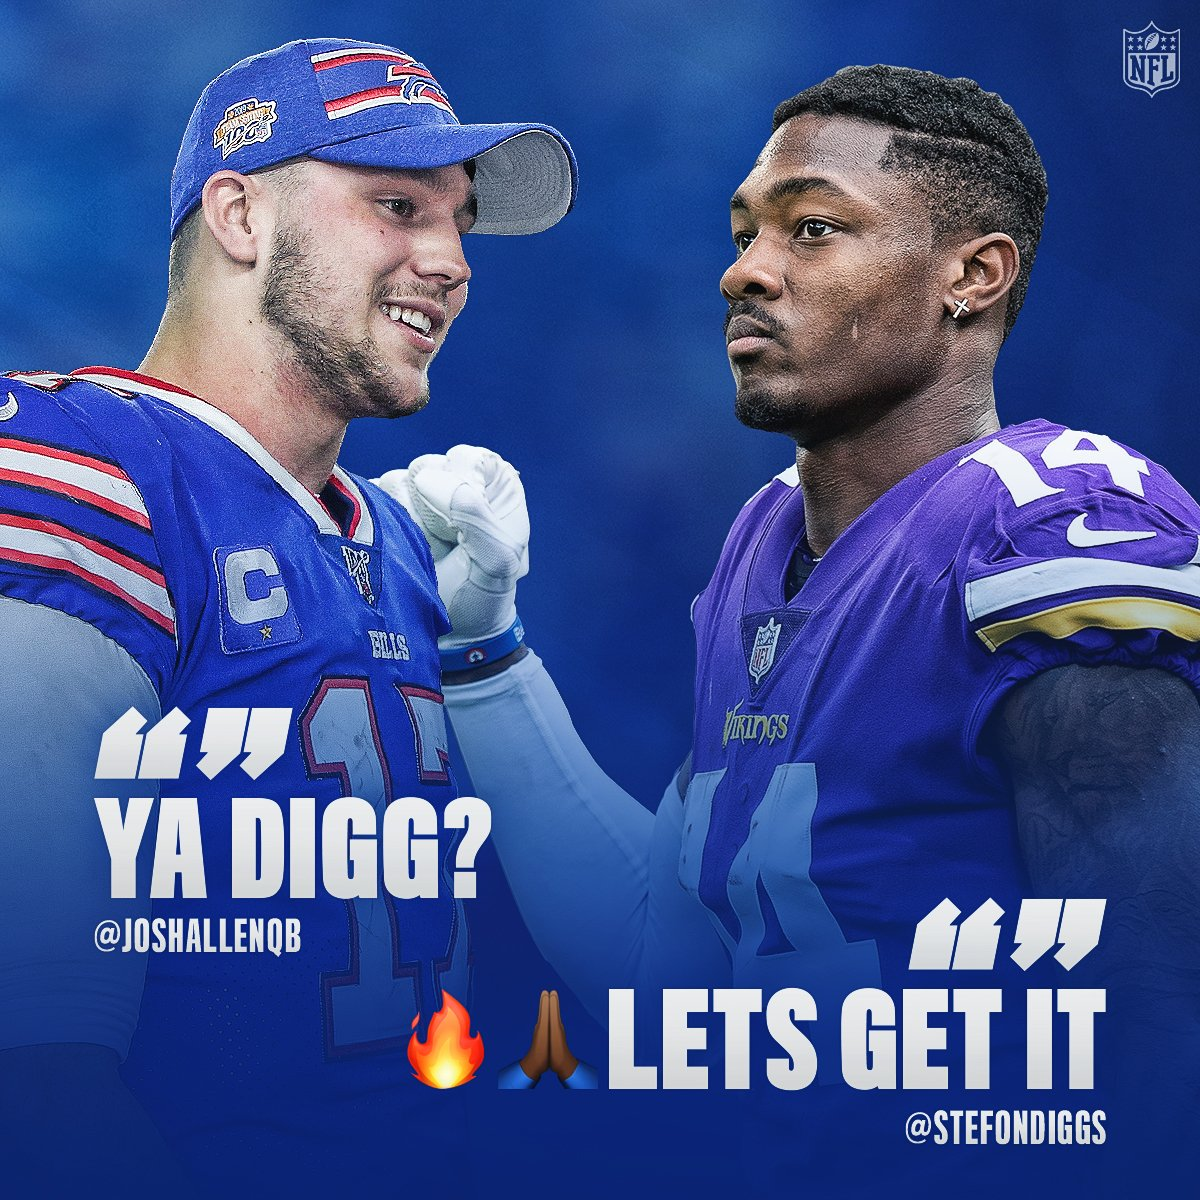 NFL Diggs graphic